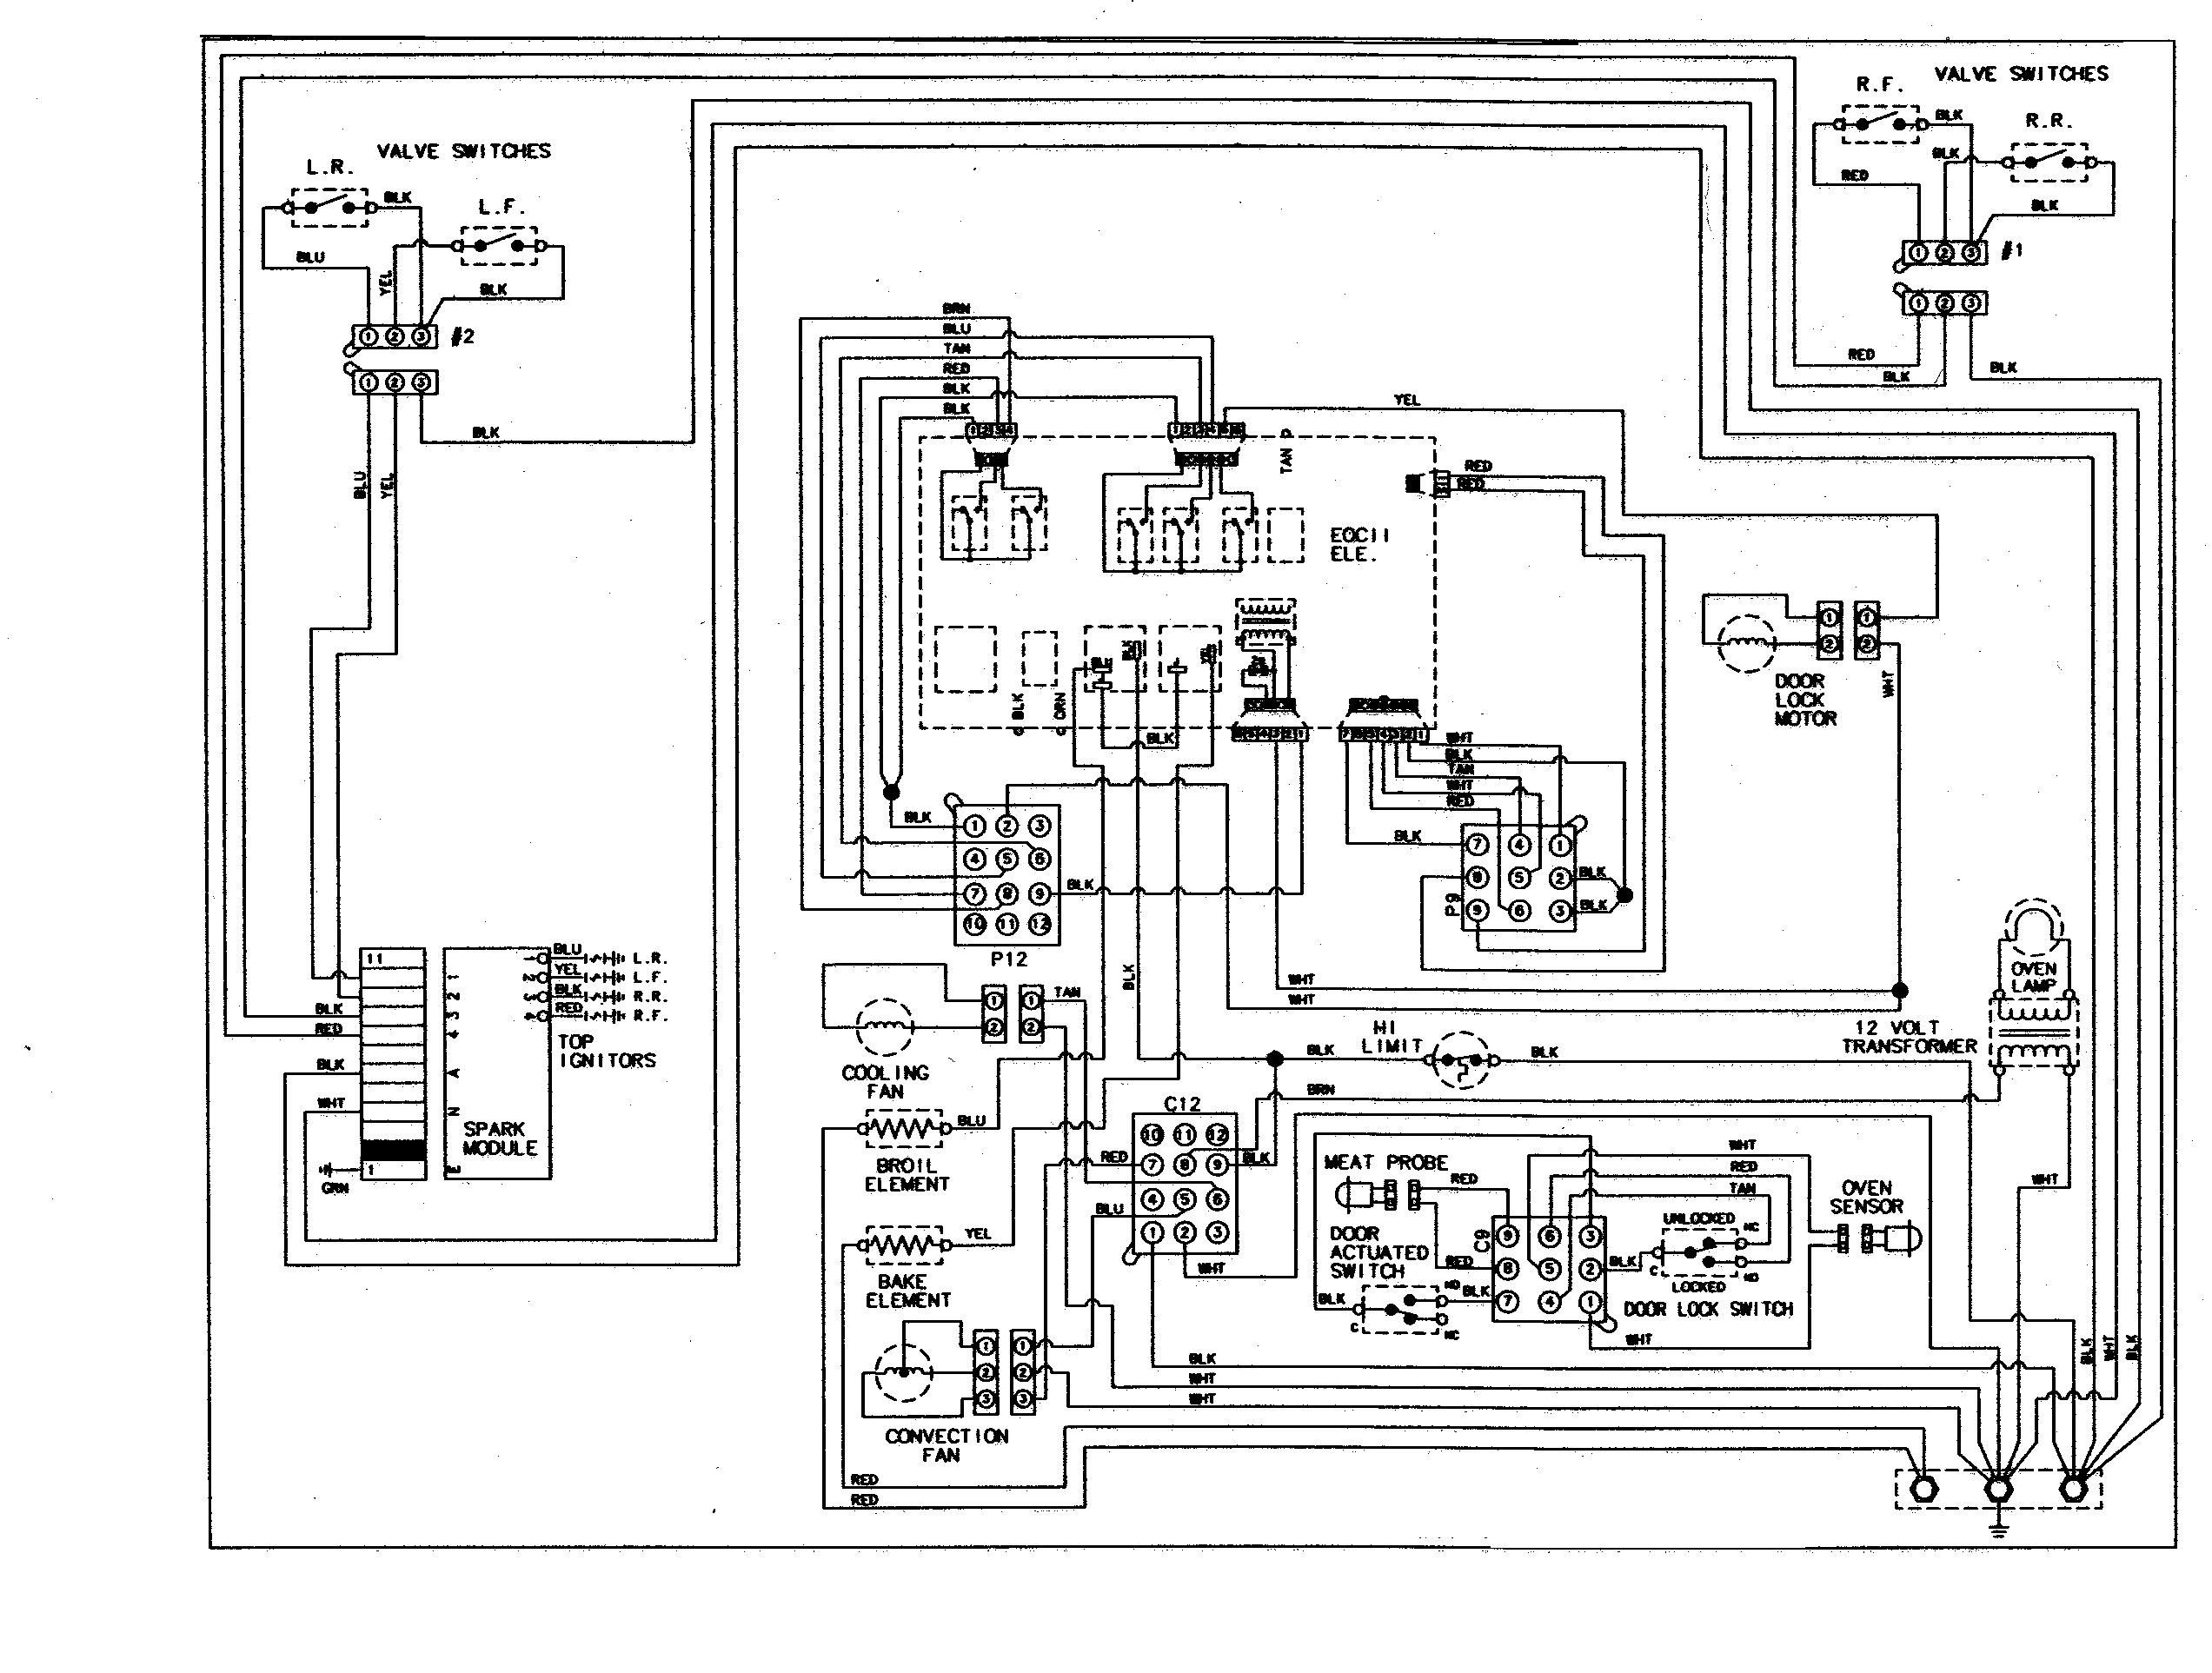 Whirlpool Range Wiring Diagram Diagram Base Website Wiring Diagram -  UMLDIAGRAM.BISTROTPAPILLON.FRDiagram Base Website Full Edition - bistrotpapillon